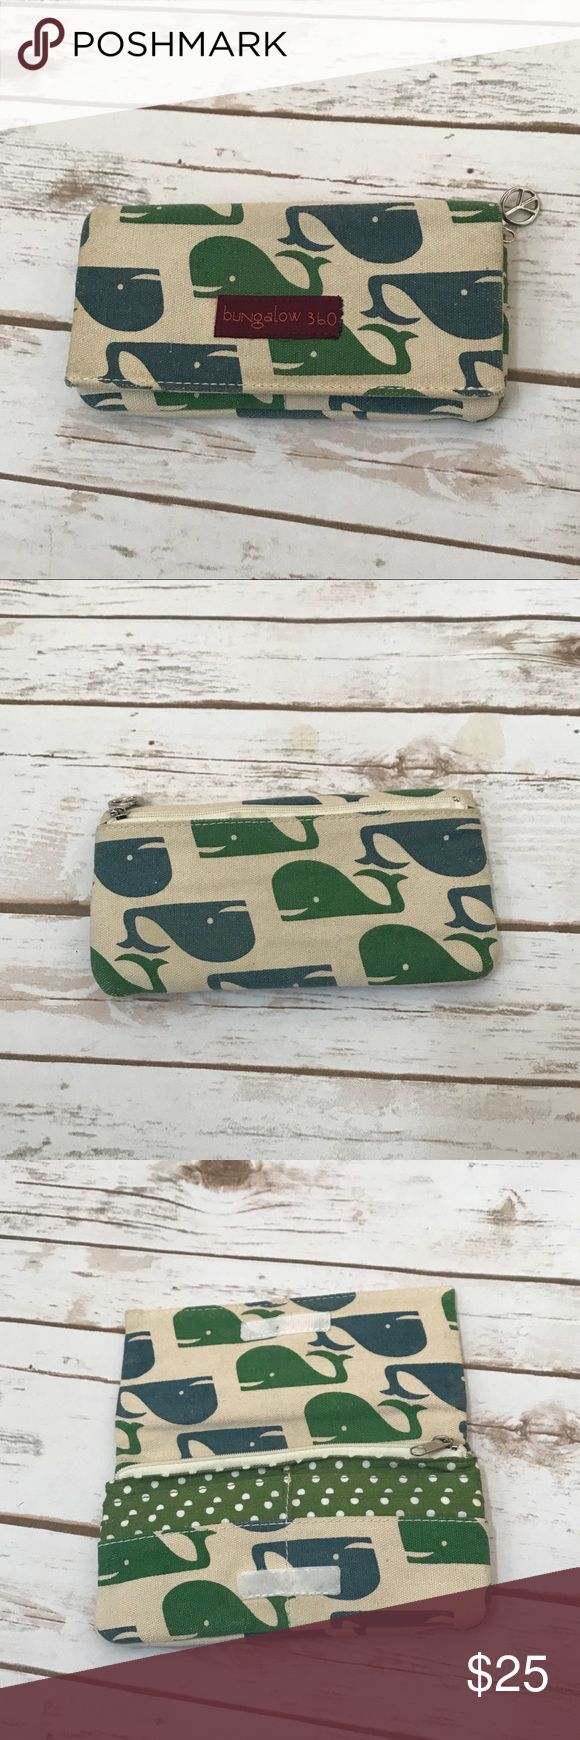 Bungalow 360 Whale Wallet Blue/ green whale print wallet. Coin, cash and cards compartments. Peace symbol on the zipper. Bungalow 360 Bags Wallets